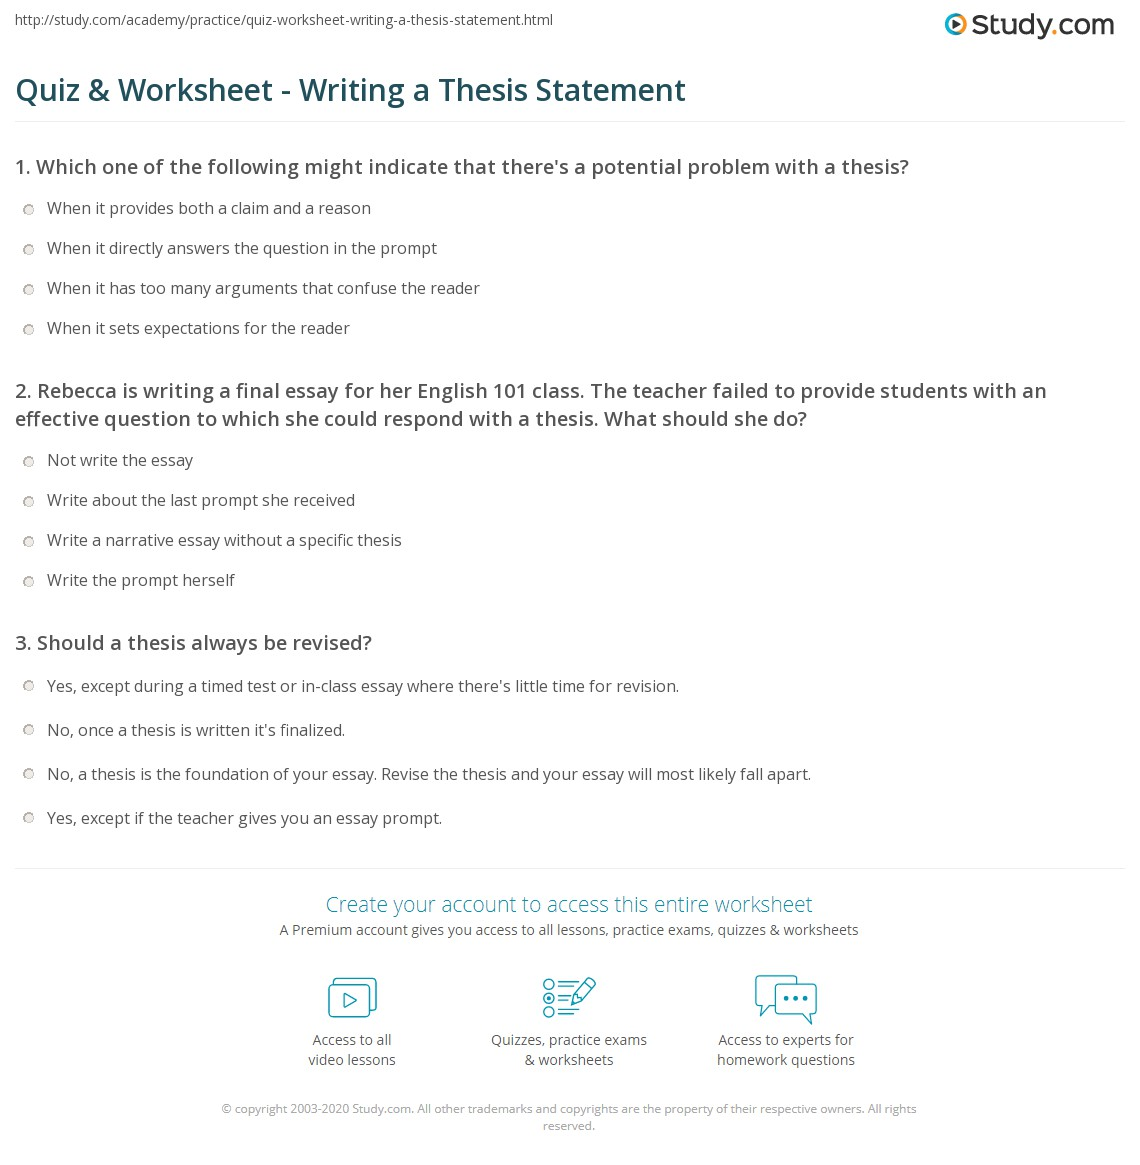 quiz worksheet writing a thesis statement com writing a final essay for her english 101 class the teacher failed to provide them an effective question to which she could respond a thesis